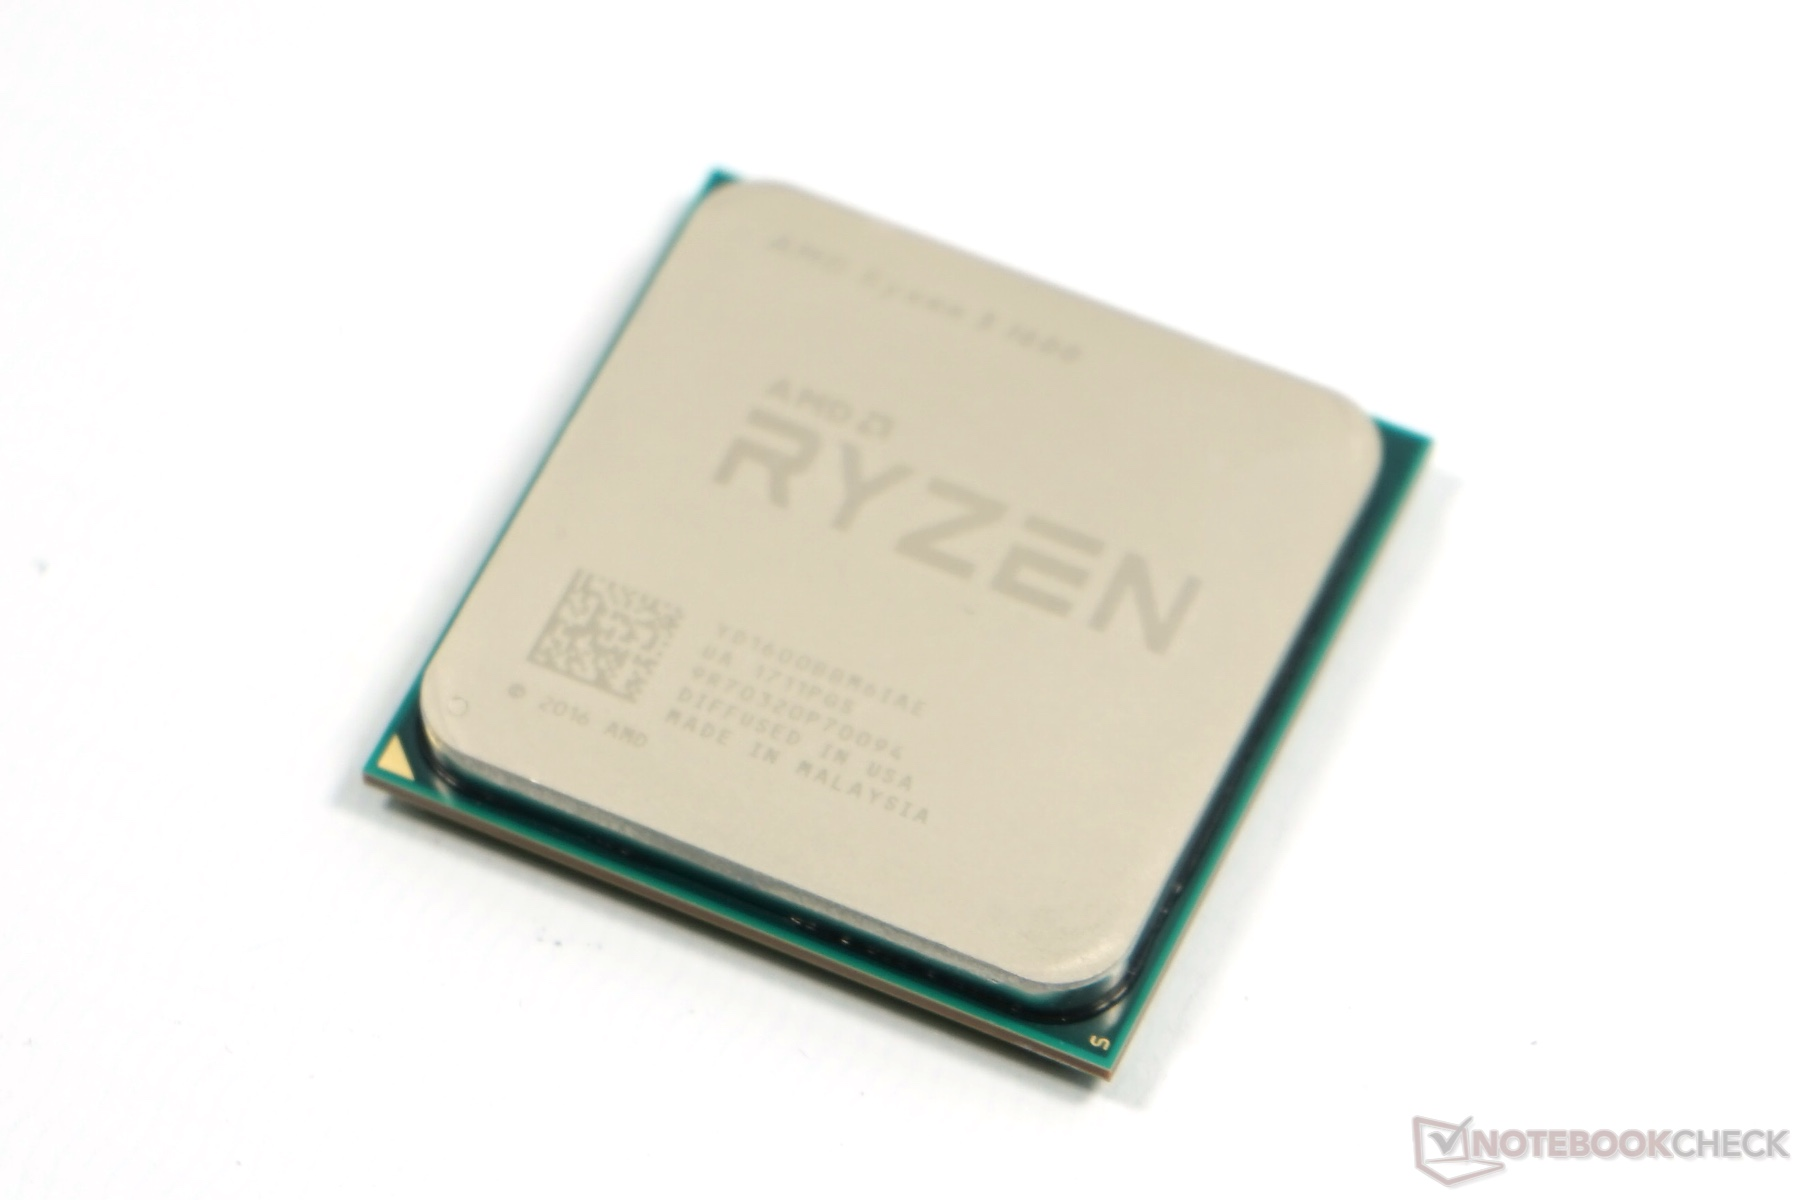 AMD Ryzen 5 1600 SoC - Benchmarks and Specs - NotebookCheck